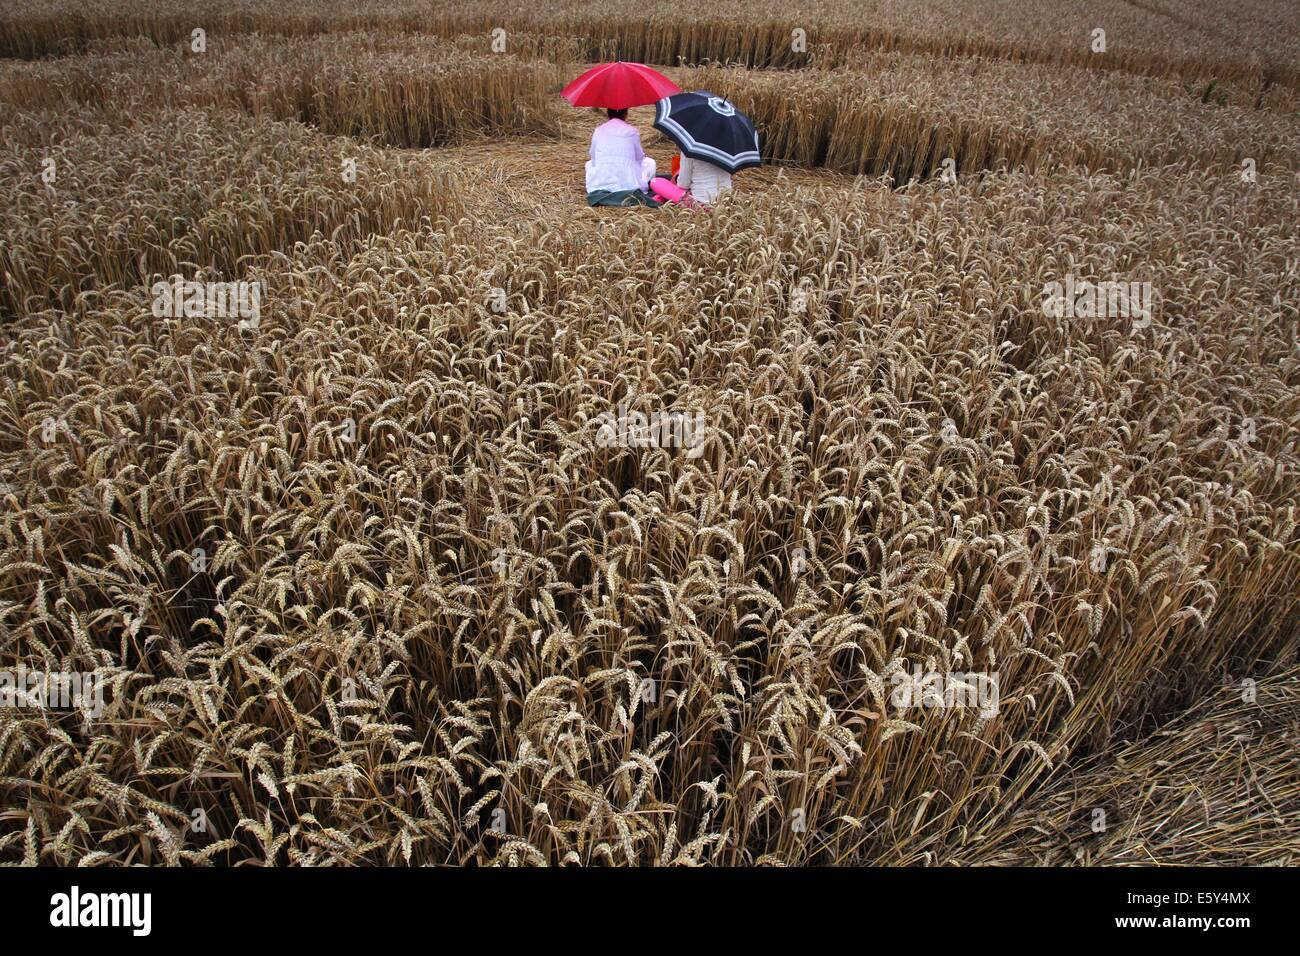 Excursionists sit underneath an umbrella in a cornfield near Raisting, Germany, 26 July 2014. A balloonist had recently - Stock Image